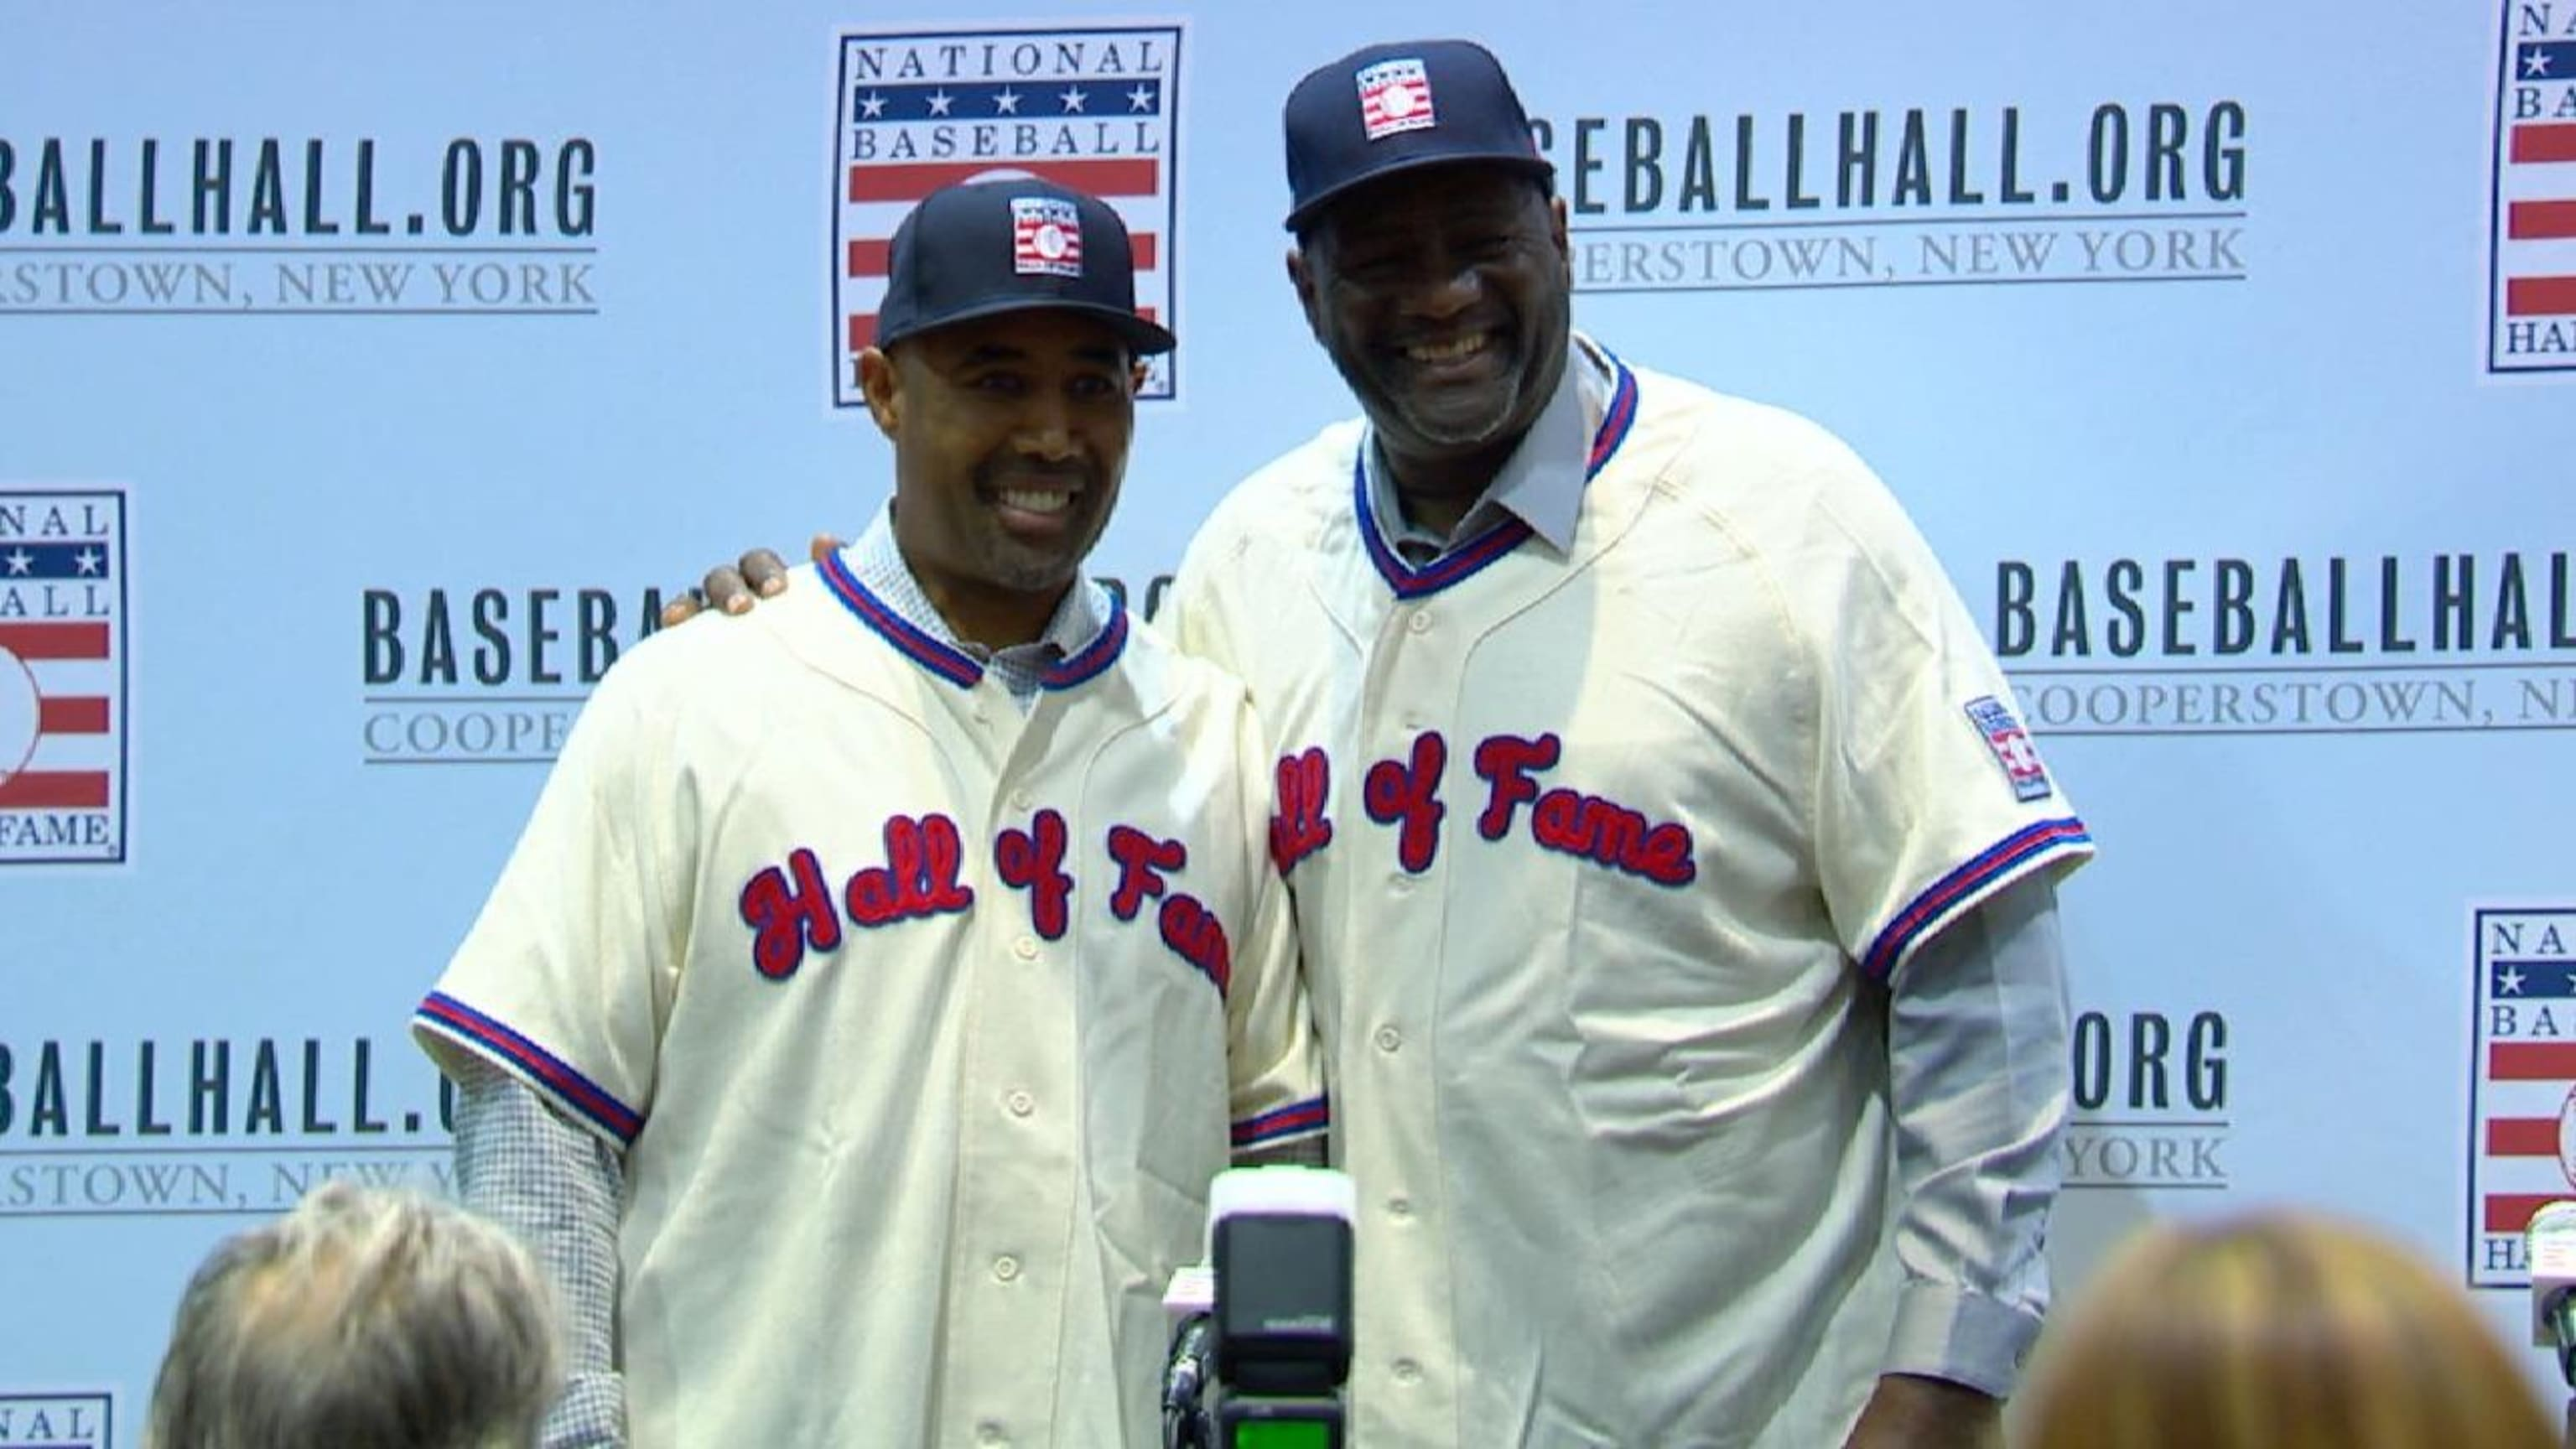 Smith, Baines elected to HOF